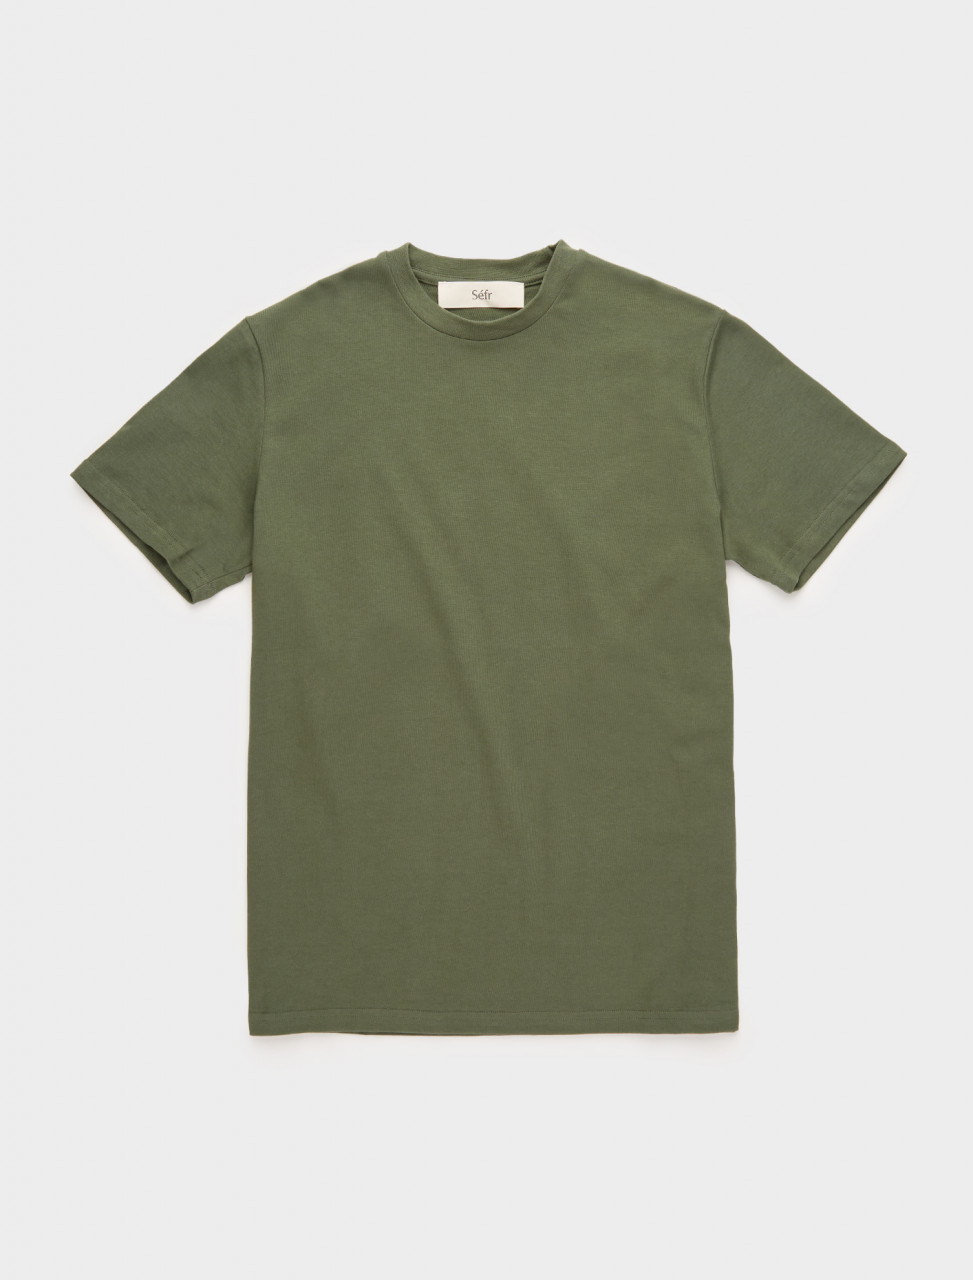 271-CT-WG SÉFR CLIN TEE IN WILLOW GREEN